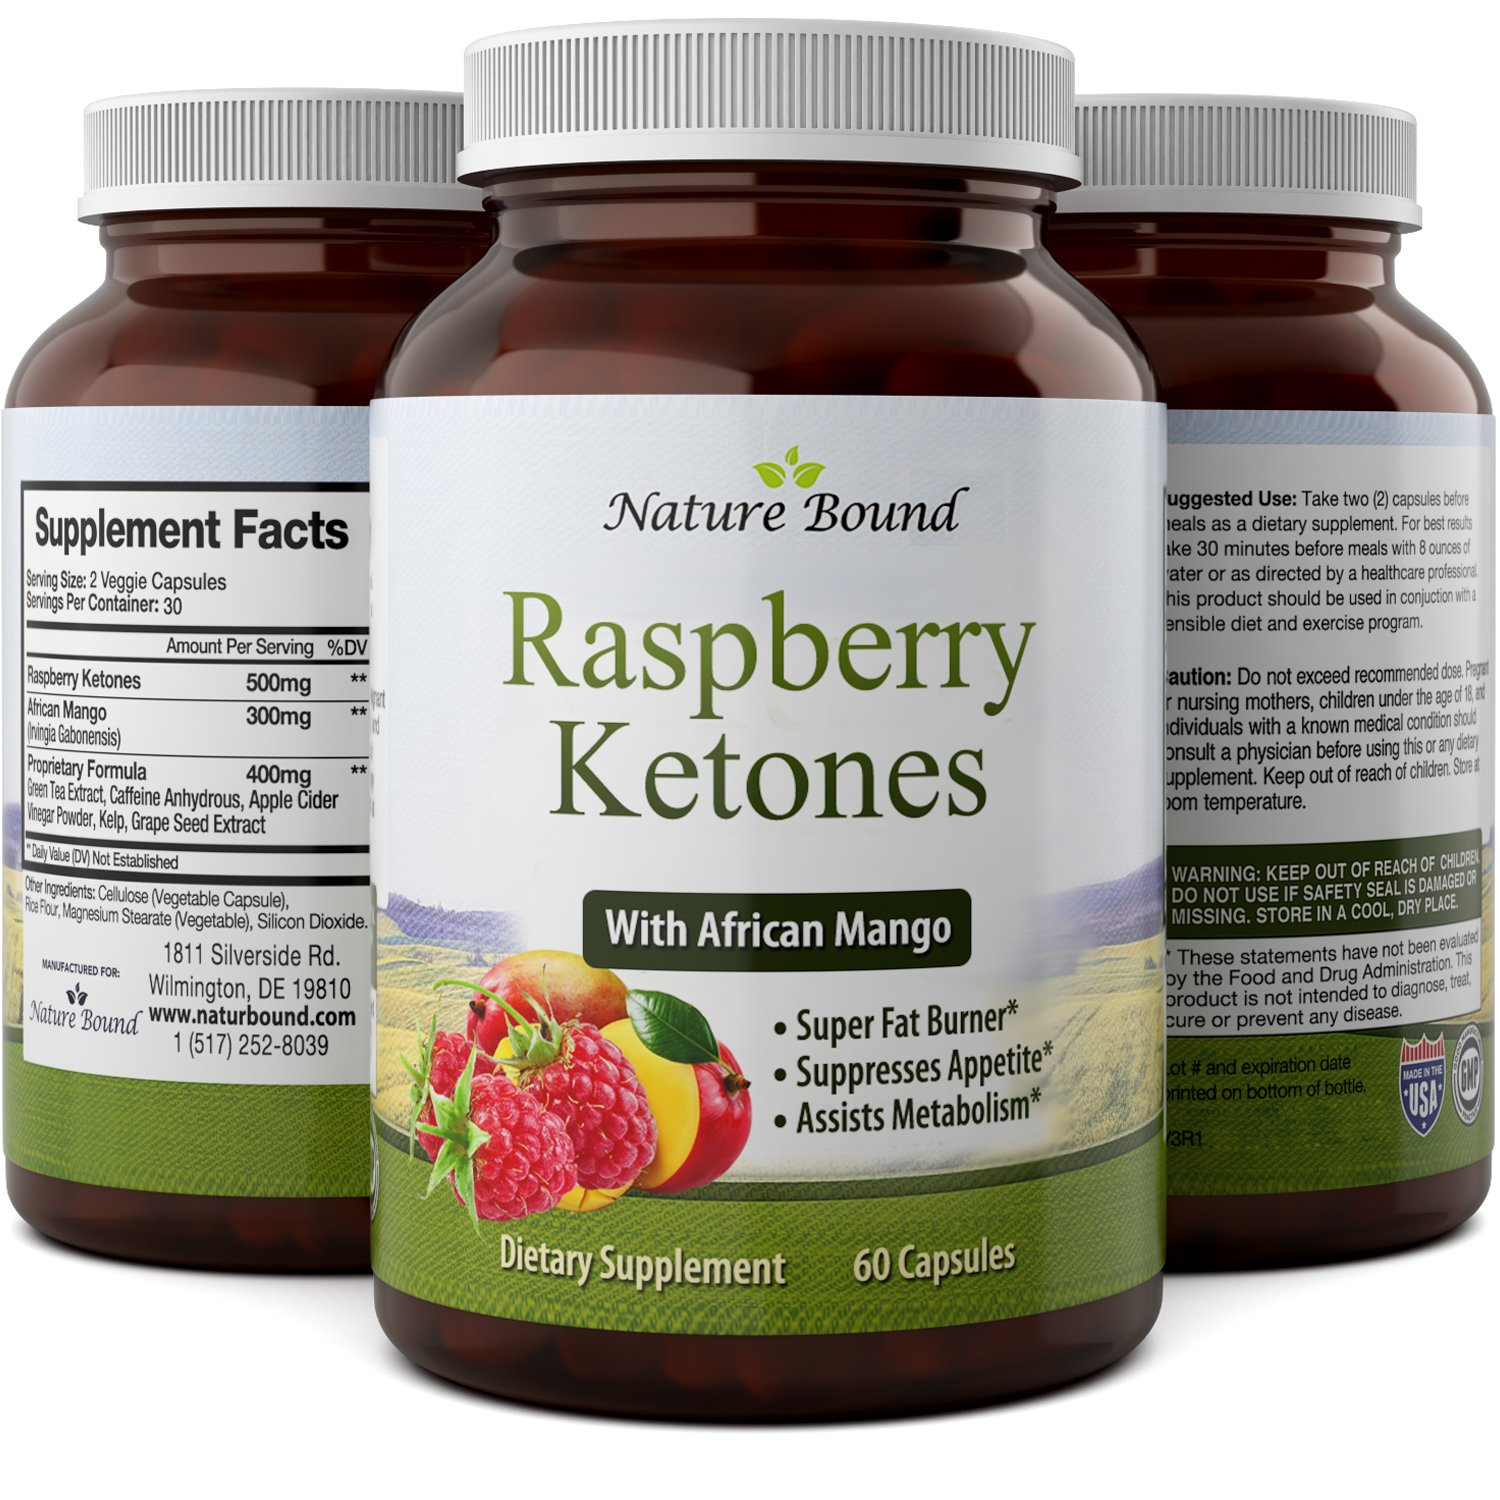 Blend Of Raspberry Ketones, Green Tea Extract And African Mango, Lose Weight Faster with Natural Ingredients To Speed Up Weight Loss, Suppress Appetite & Burn Fat, 60 Capsules by Nature Bound